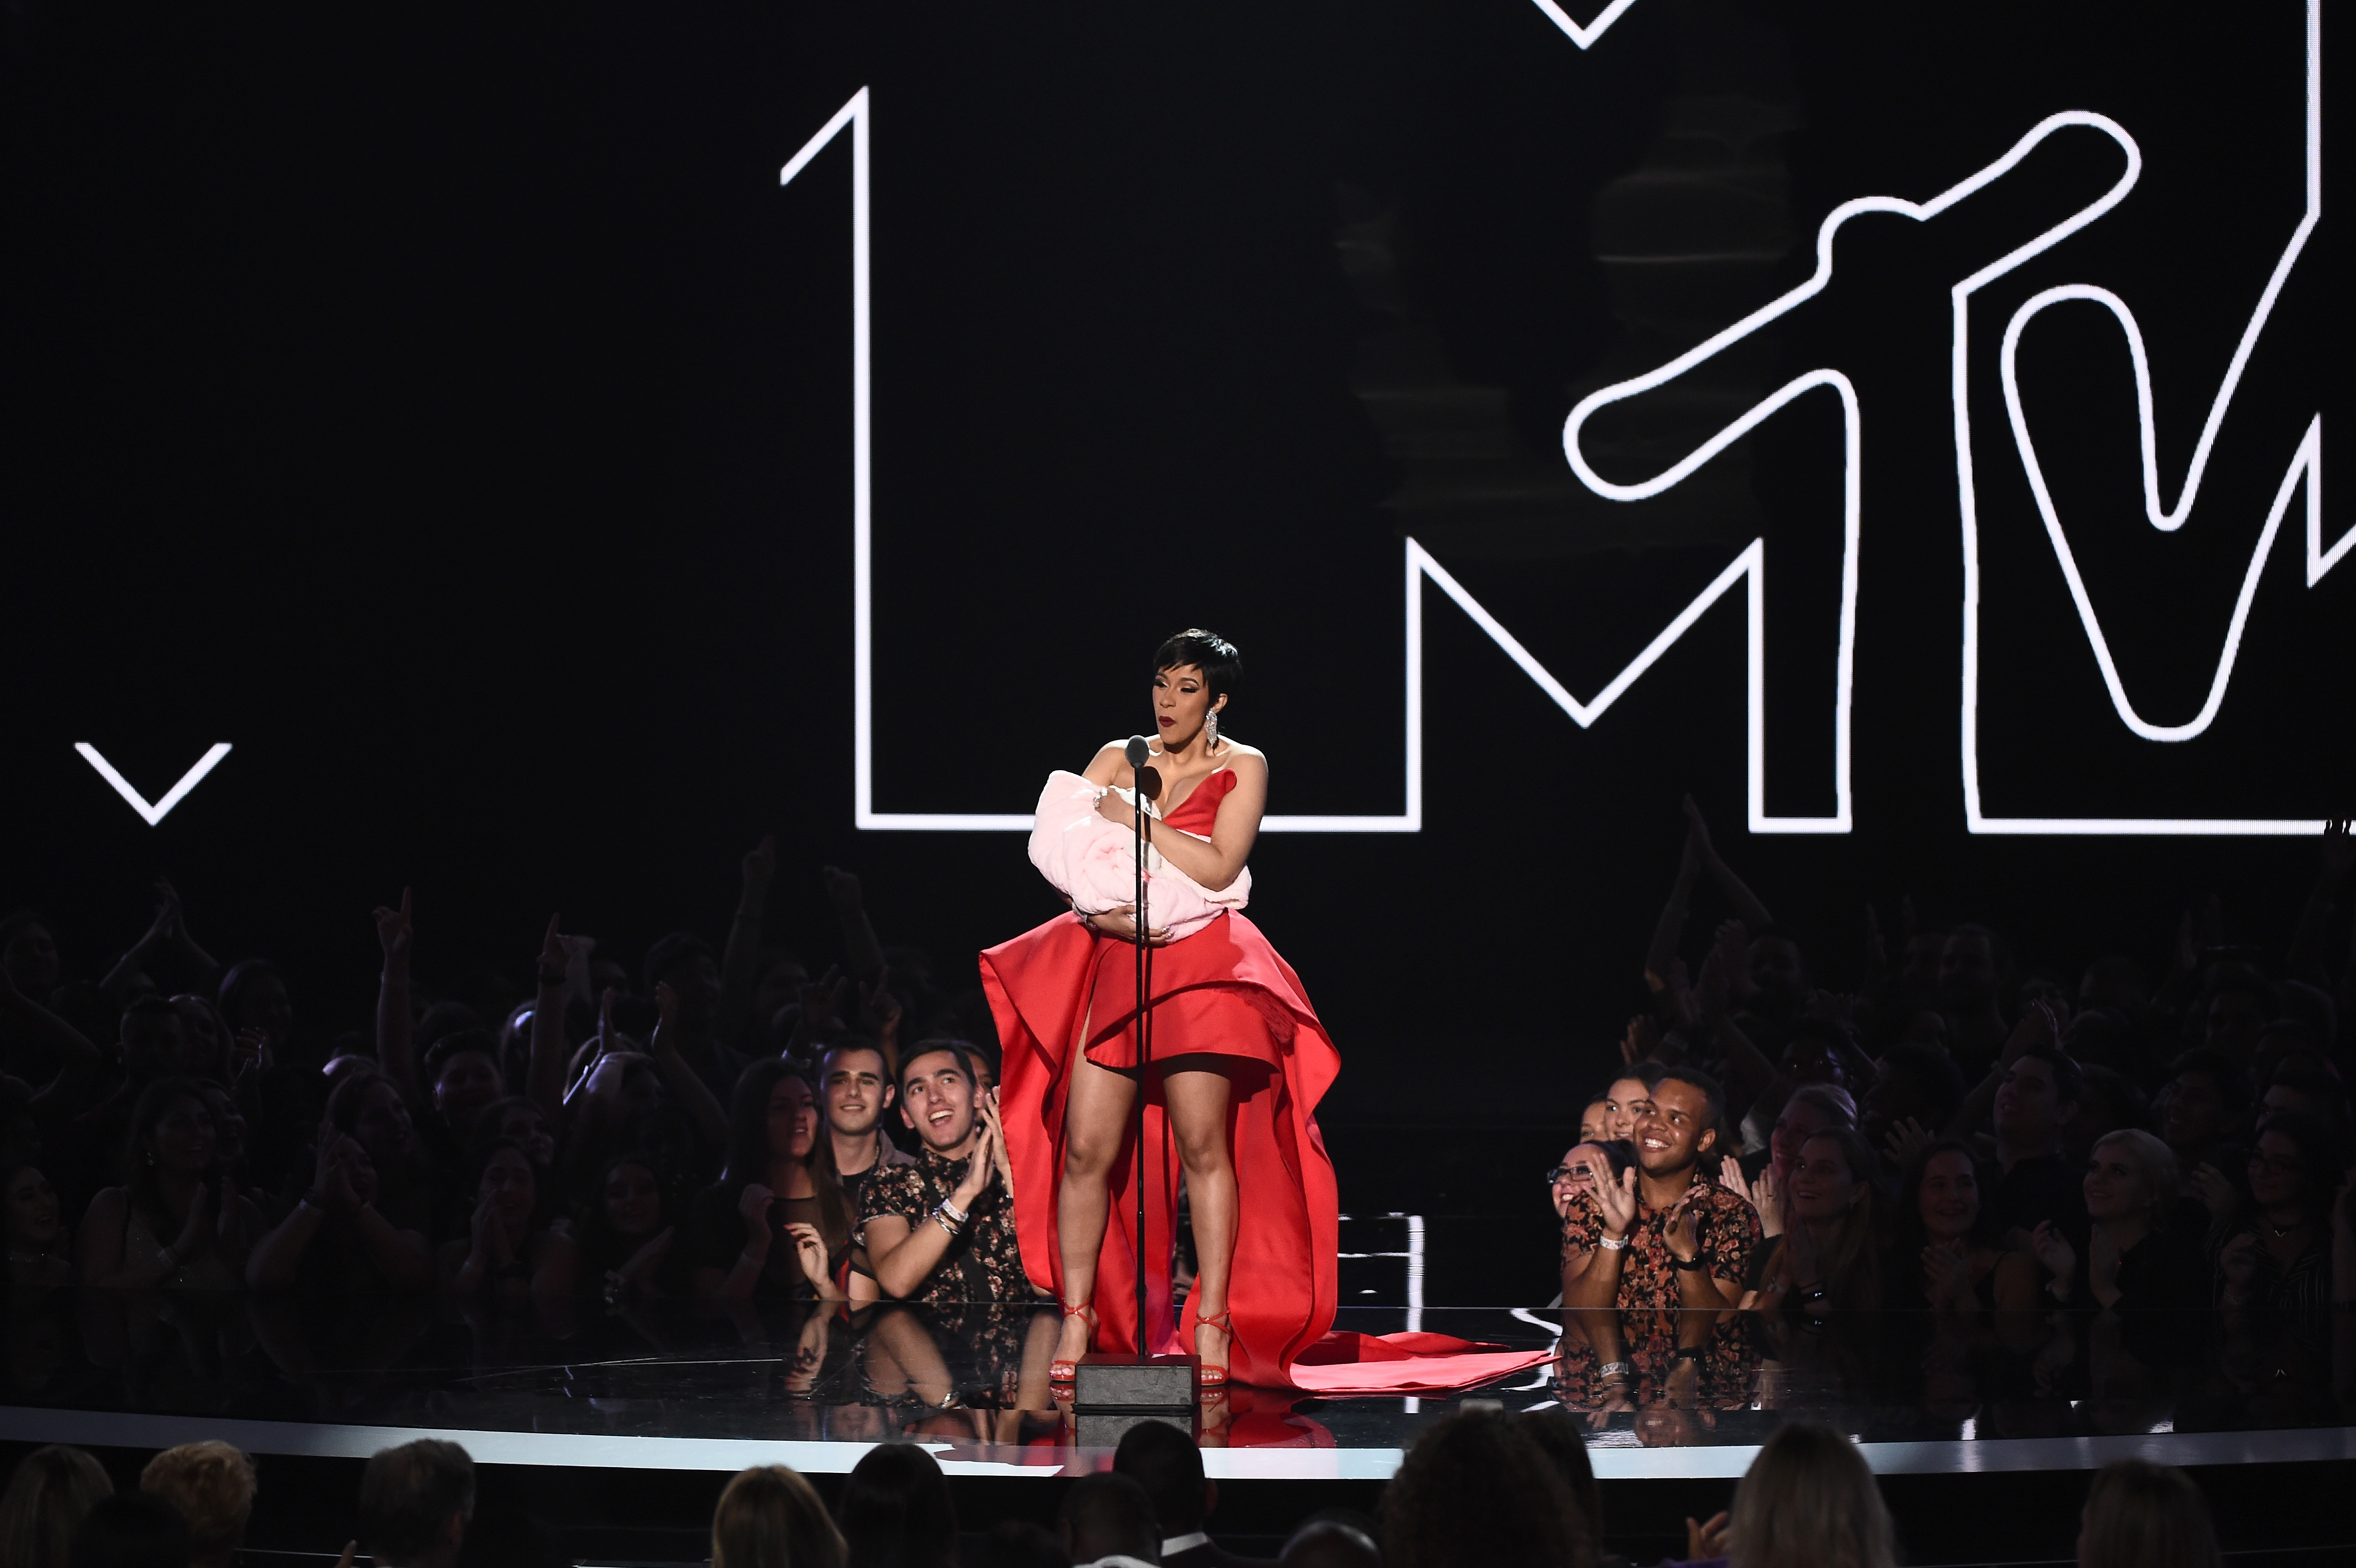 Cardi B speaks onstage during the 2018 MTV Video Music Awards at Radio City Music Hall on August 20, 2018 in New York City.  (Photo by Michael Loccisano/Getty Images for MTV)